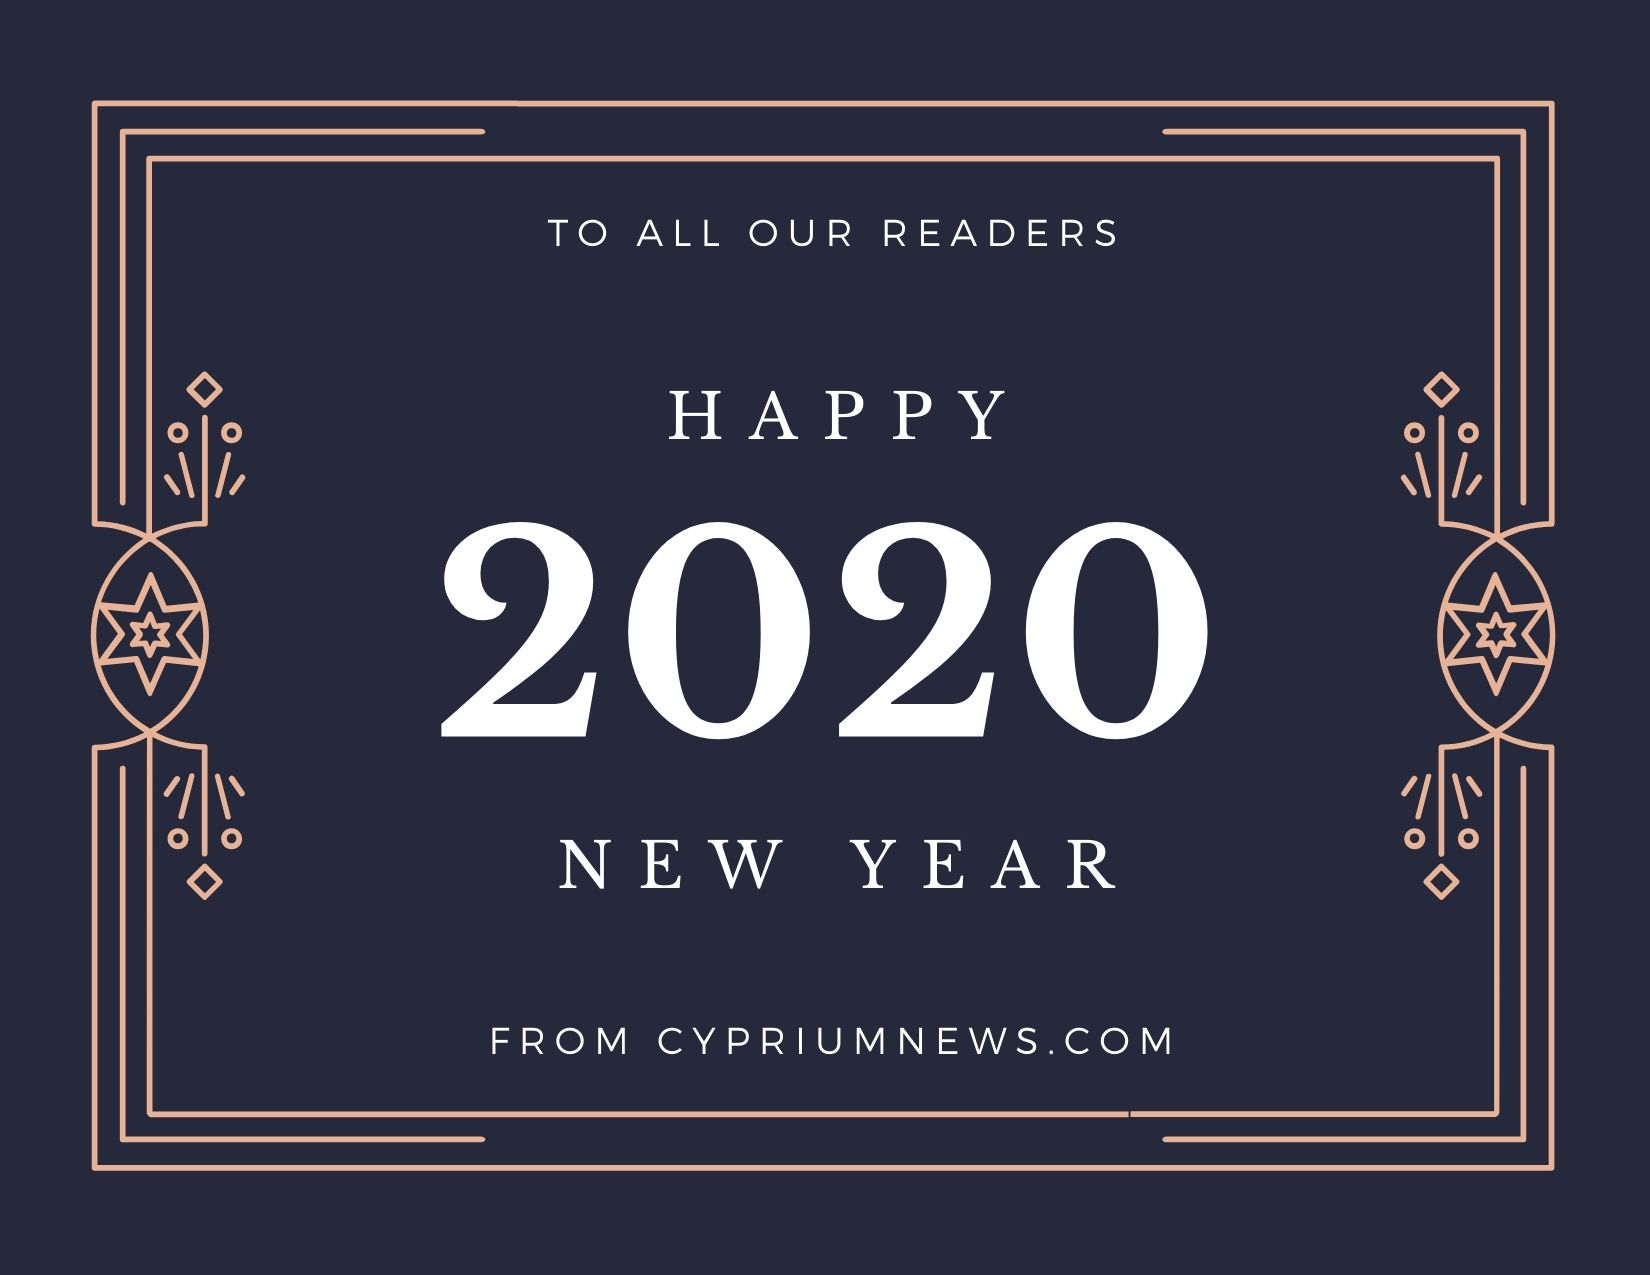 Happy New Year from Cypriumnews.com 2